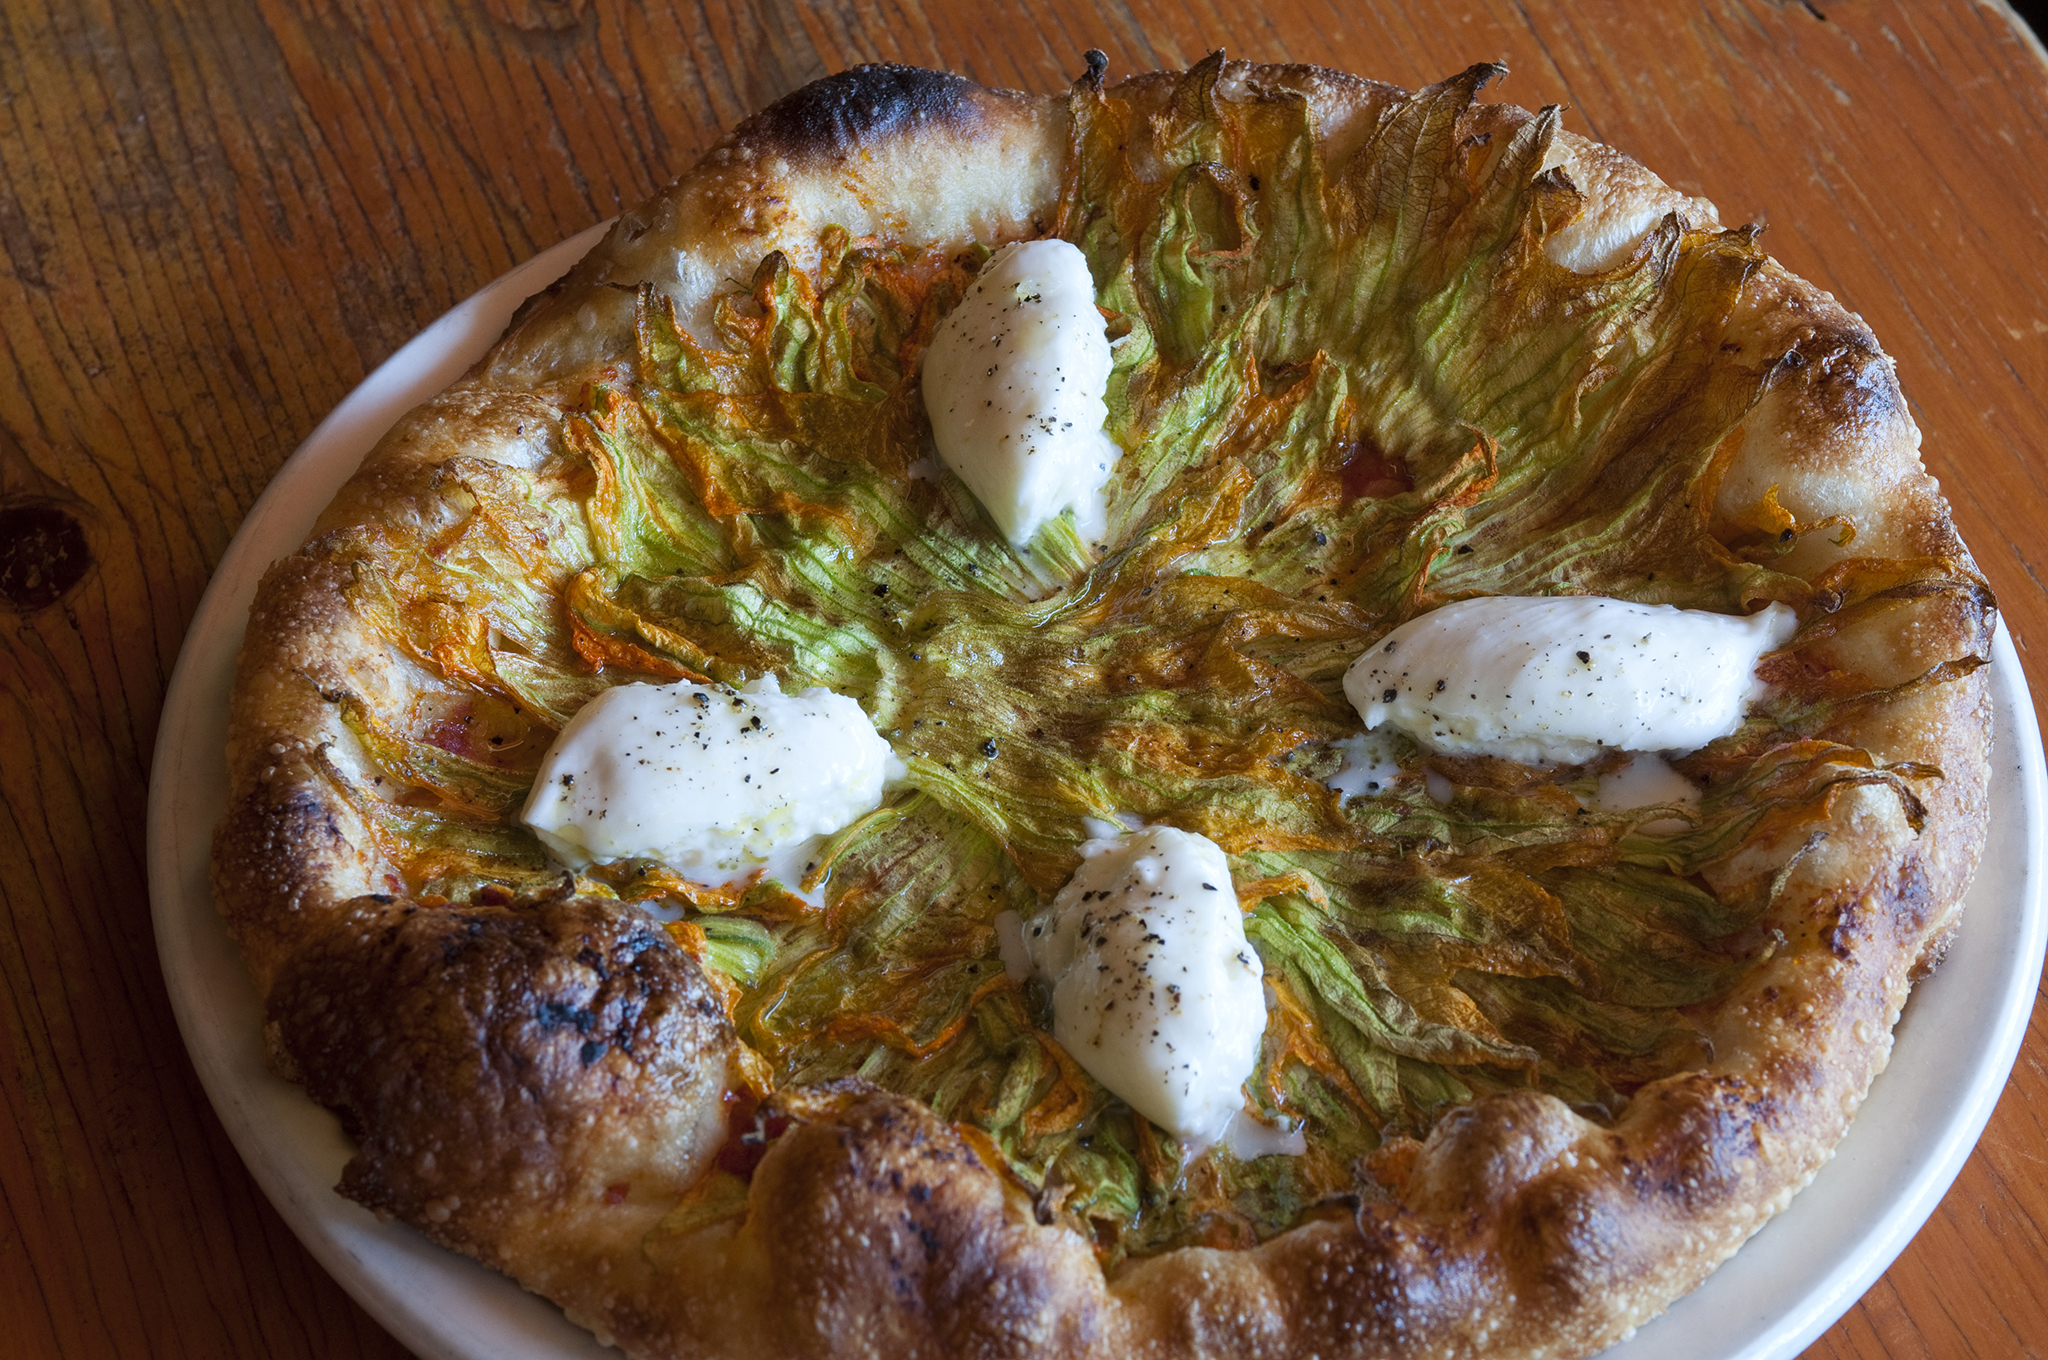 Pizza with squash blossoms and burrata at Pizzeria Mozza